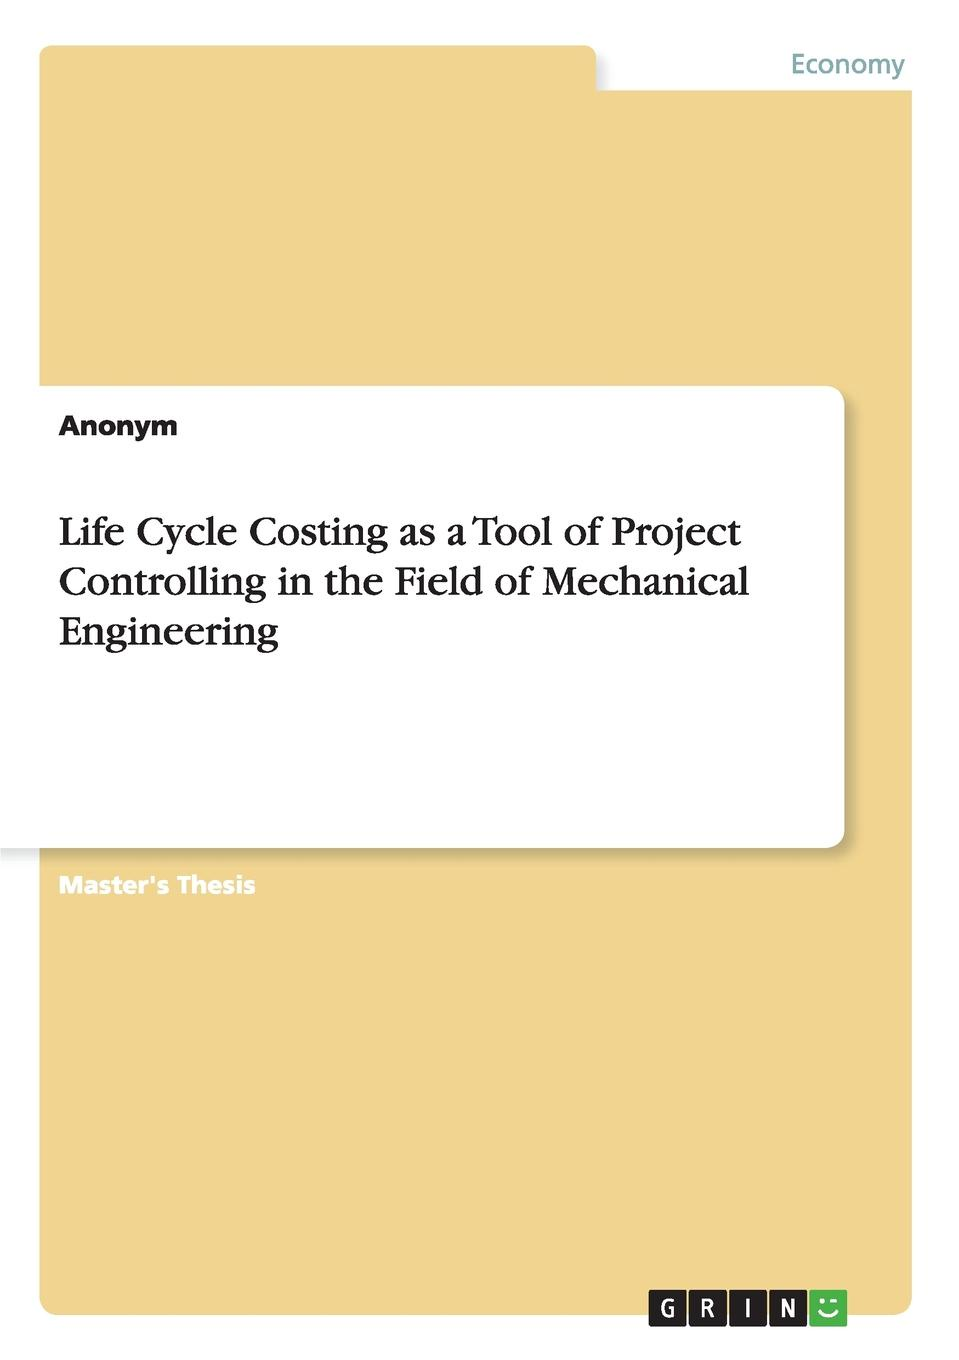 Неустановленный автор Life Cycle Costing as a Tool of Project Controlling in the Field of Mechanical Engineering the cost of contracting out